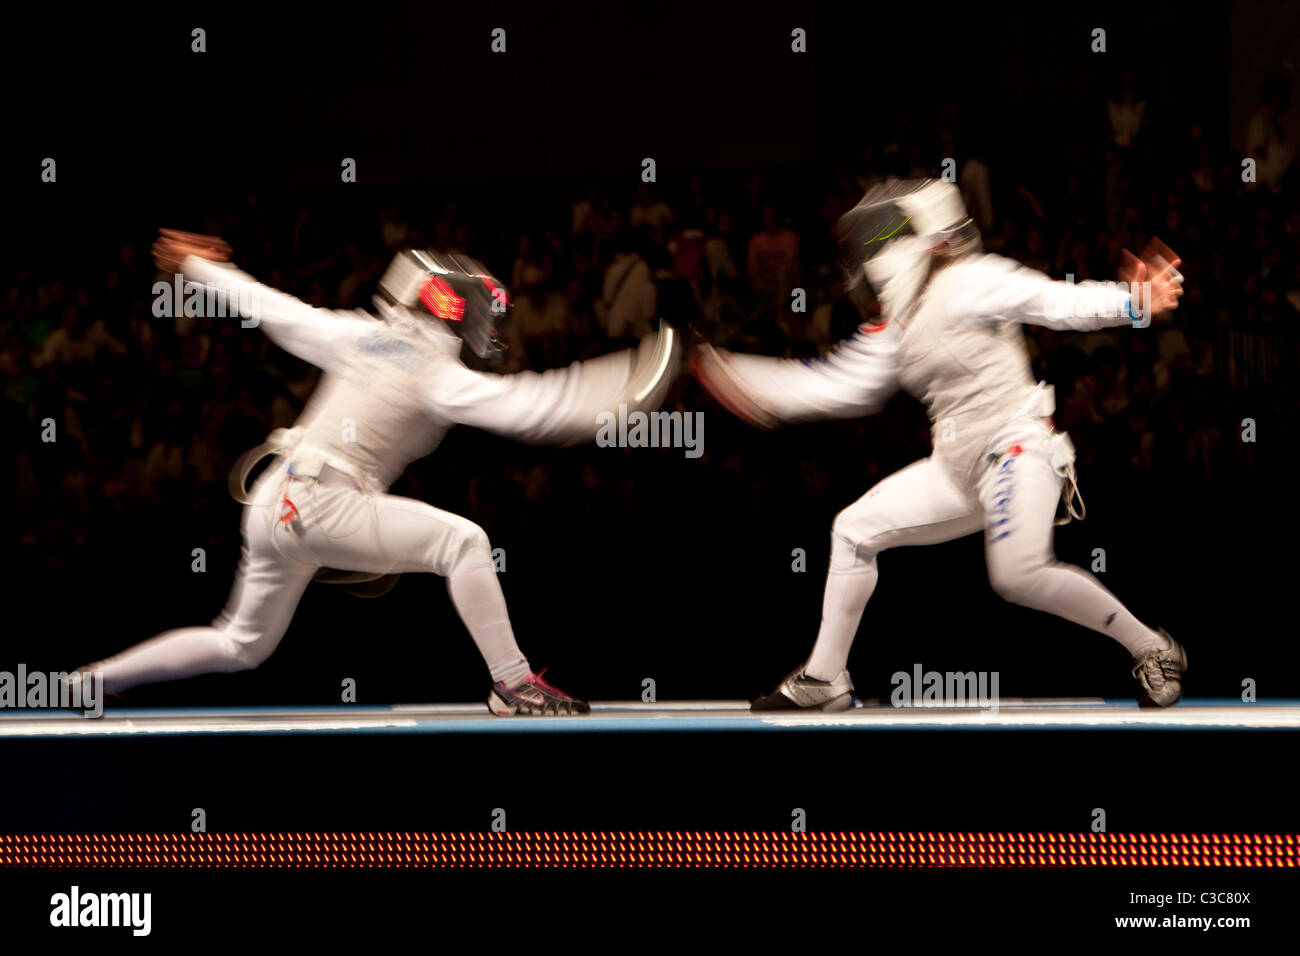 Blurred action of women's fencing competition at the 2008 Olympic Summer Games, Beijing, China Stock Photo